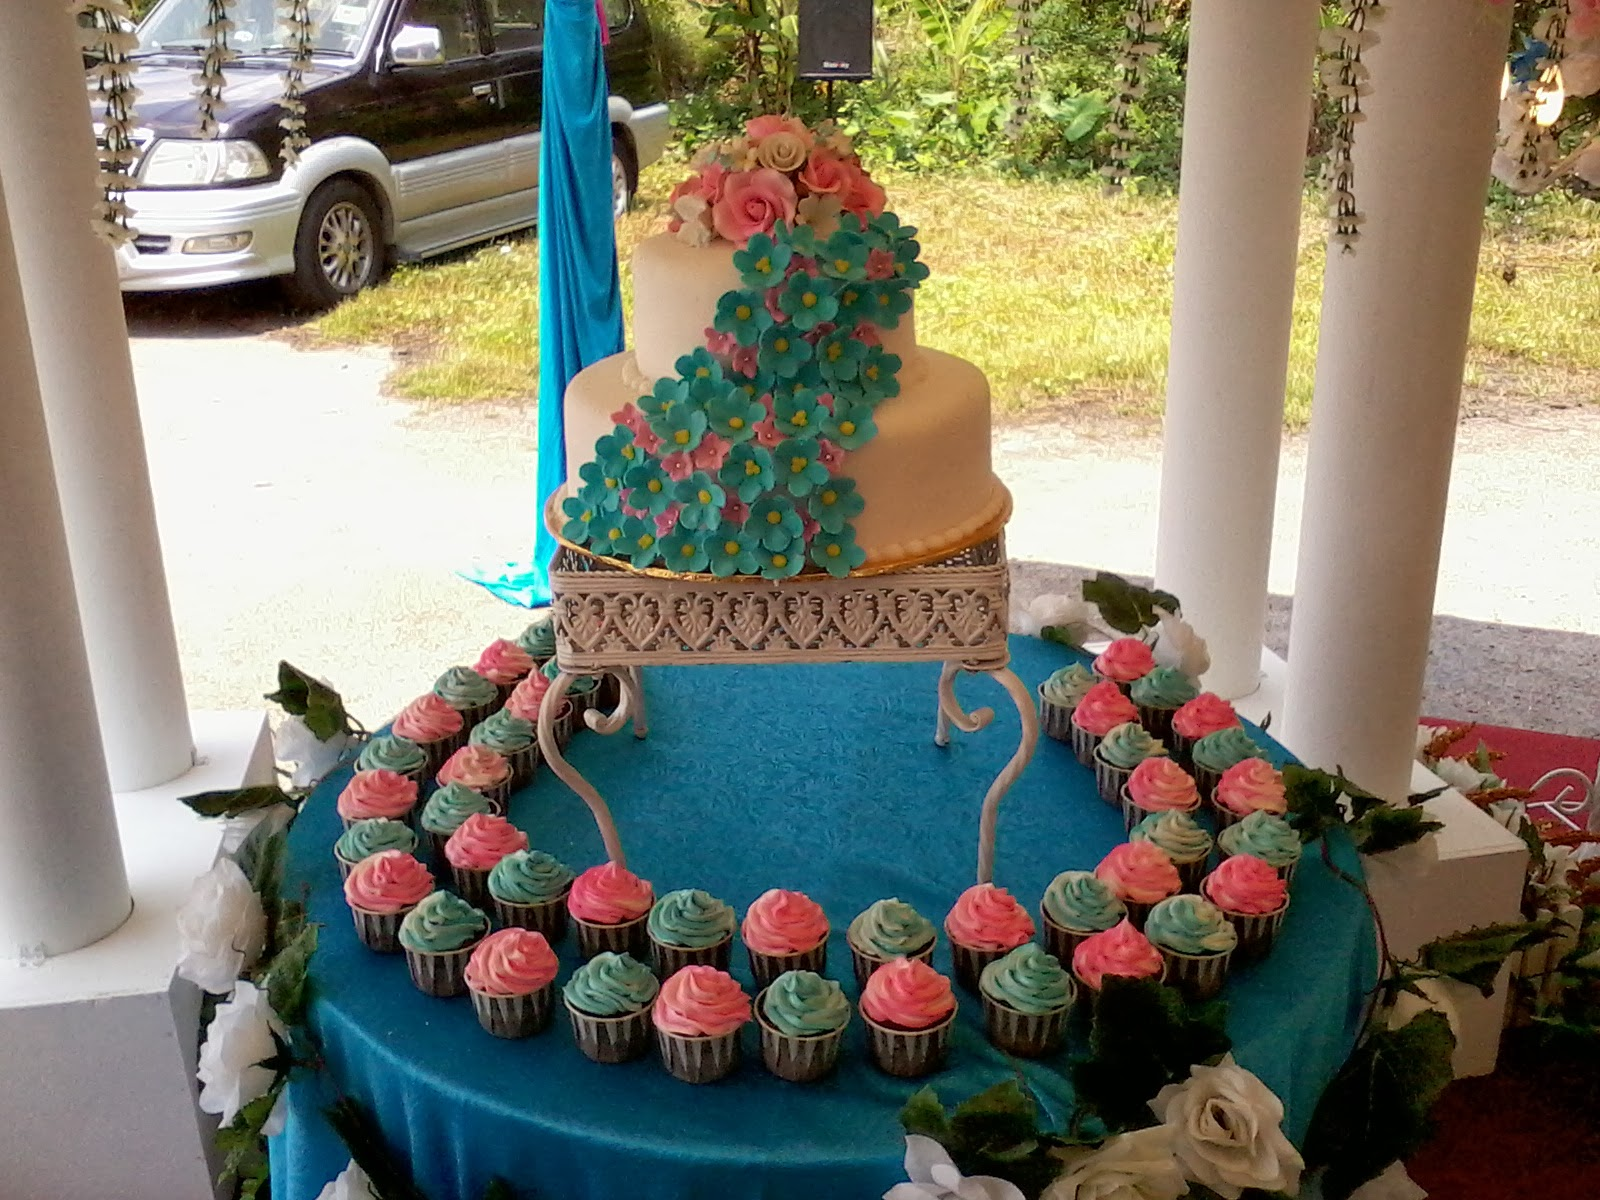 Turquoise Fuchsia Wedding: Jujucupcakes: Turquoise And Pink Themed Wedding